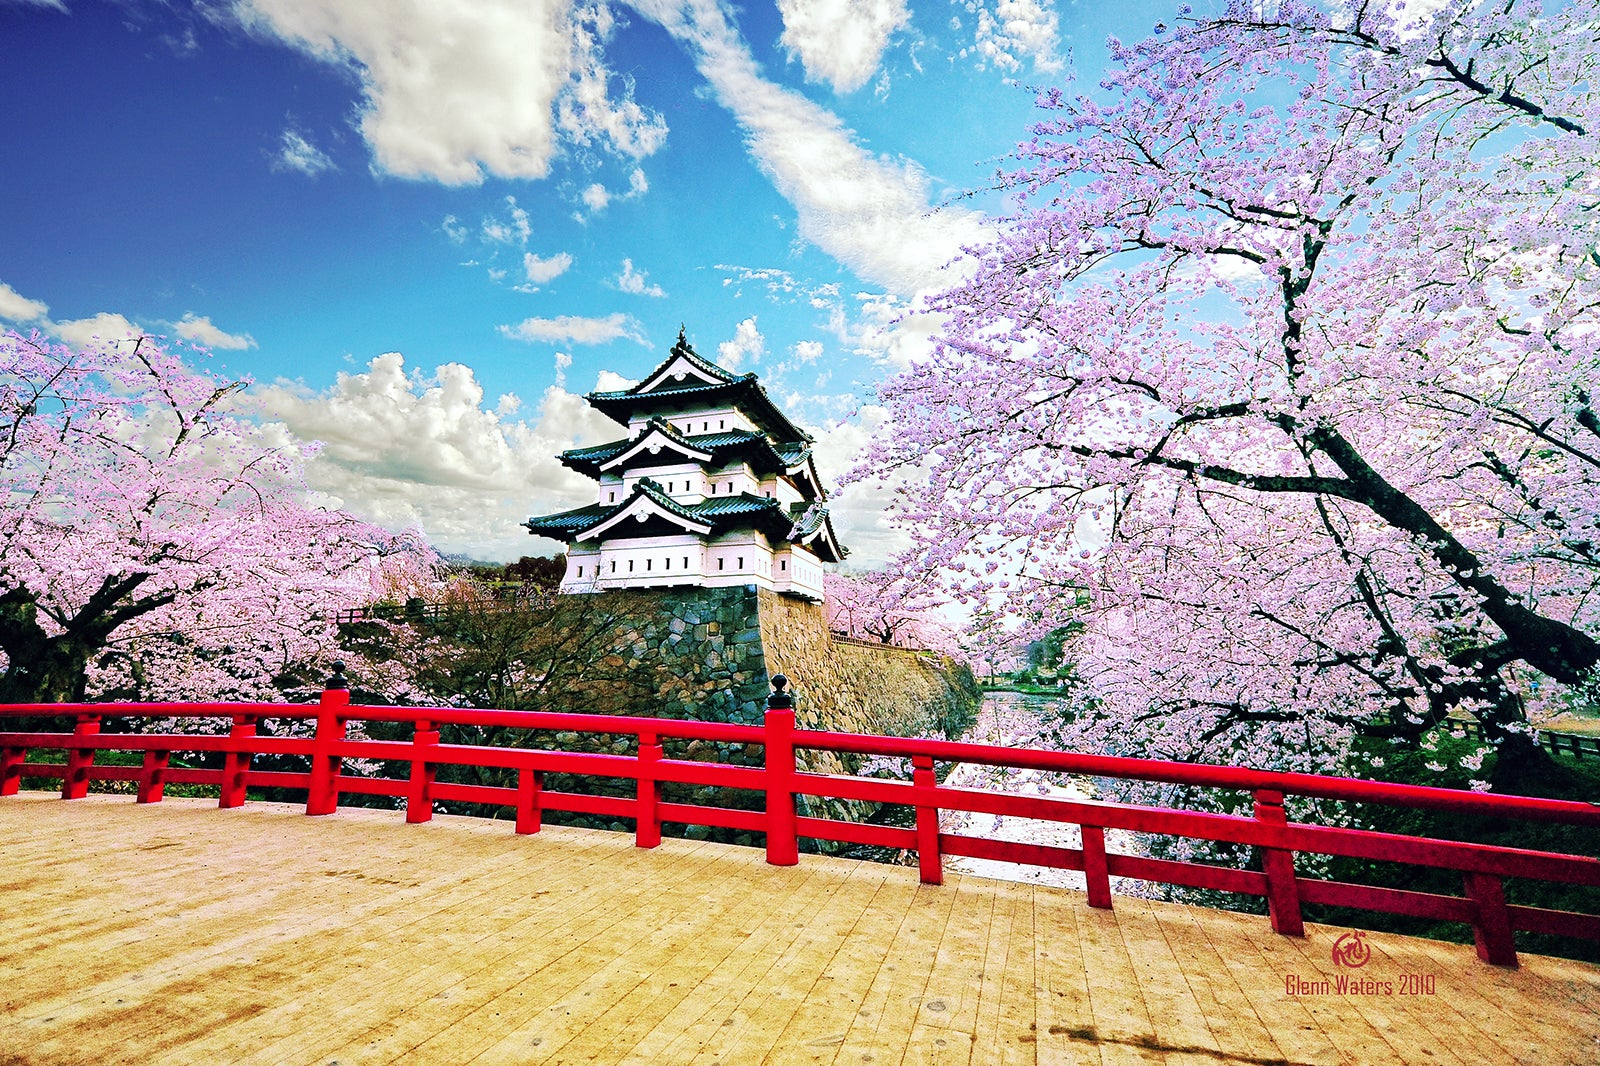 10 Best Cherry Blossom Spots In Japan Where To View Japan S Cherry Blossoms Go Guides